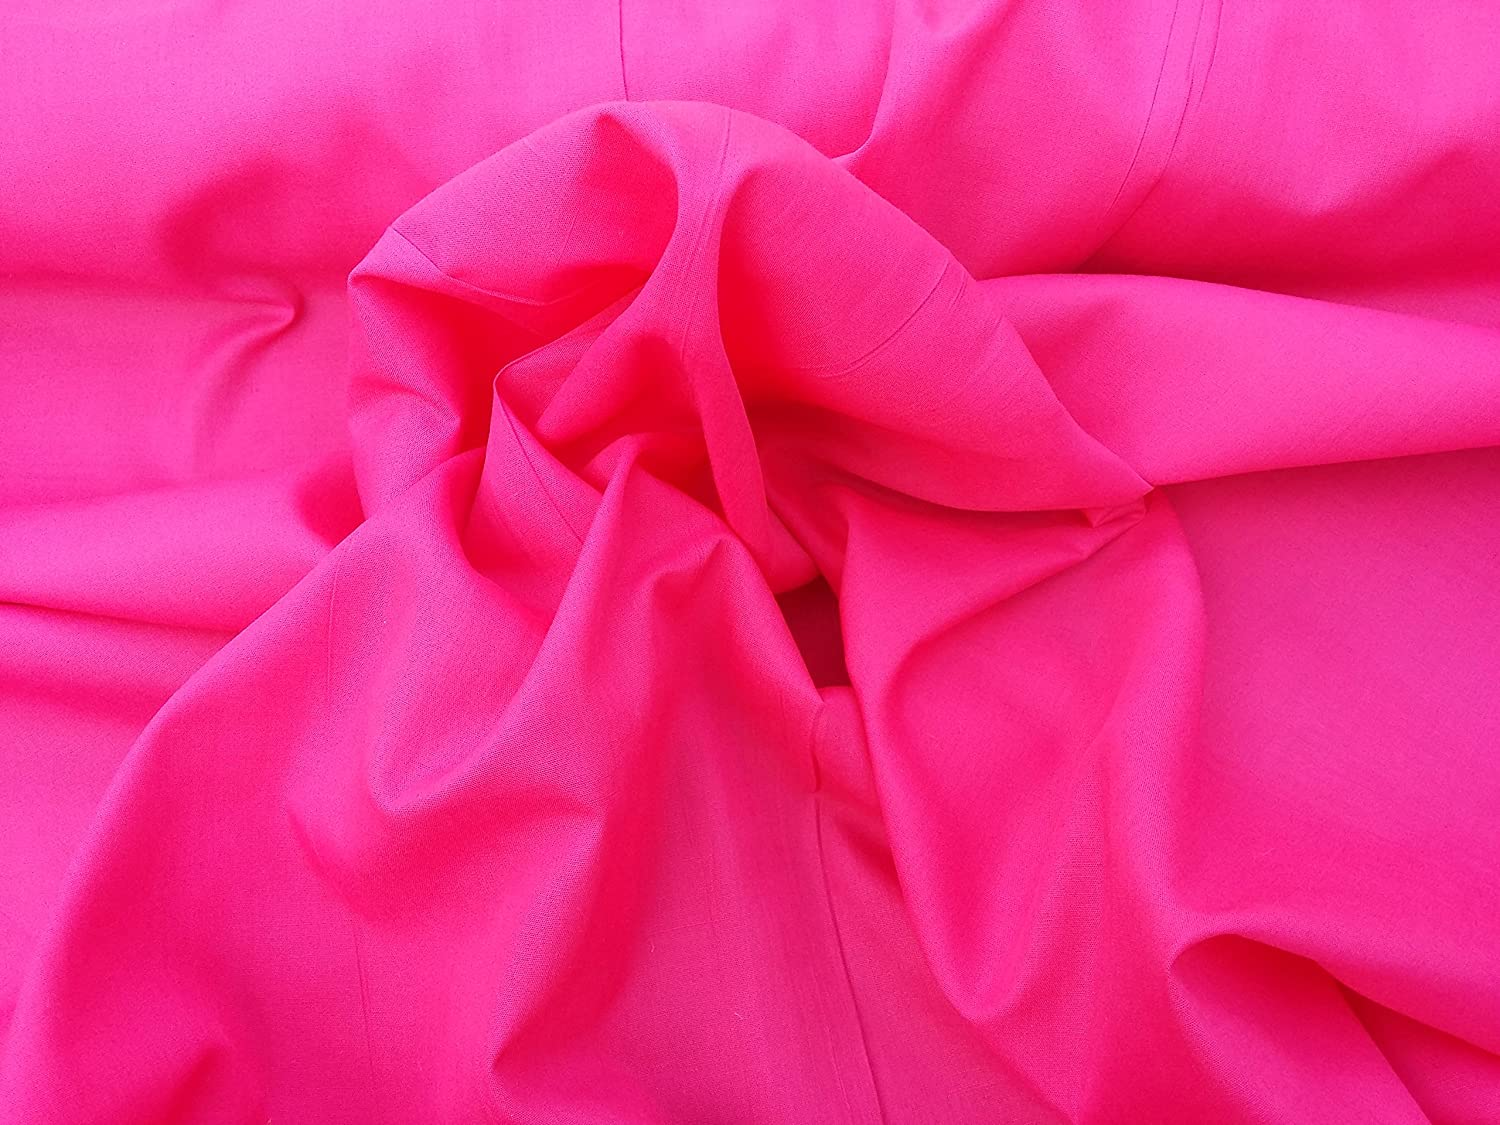 Prestige Fashion Polycotton Fabric Material All Plain Colours - By The Metre 115cm wide (45) (Cerise/Hot Pink) by Prestige Fashion UK Ltd